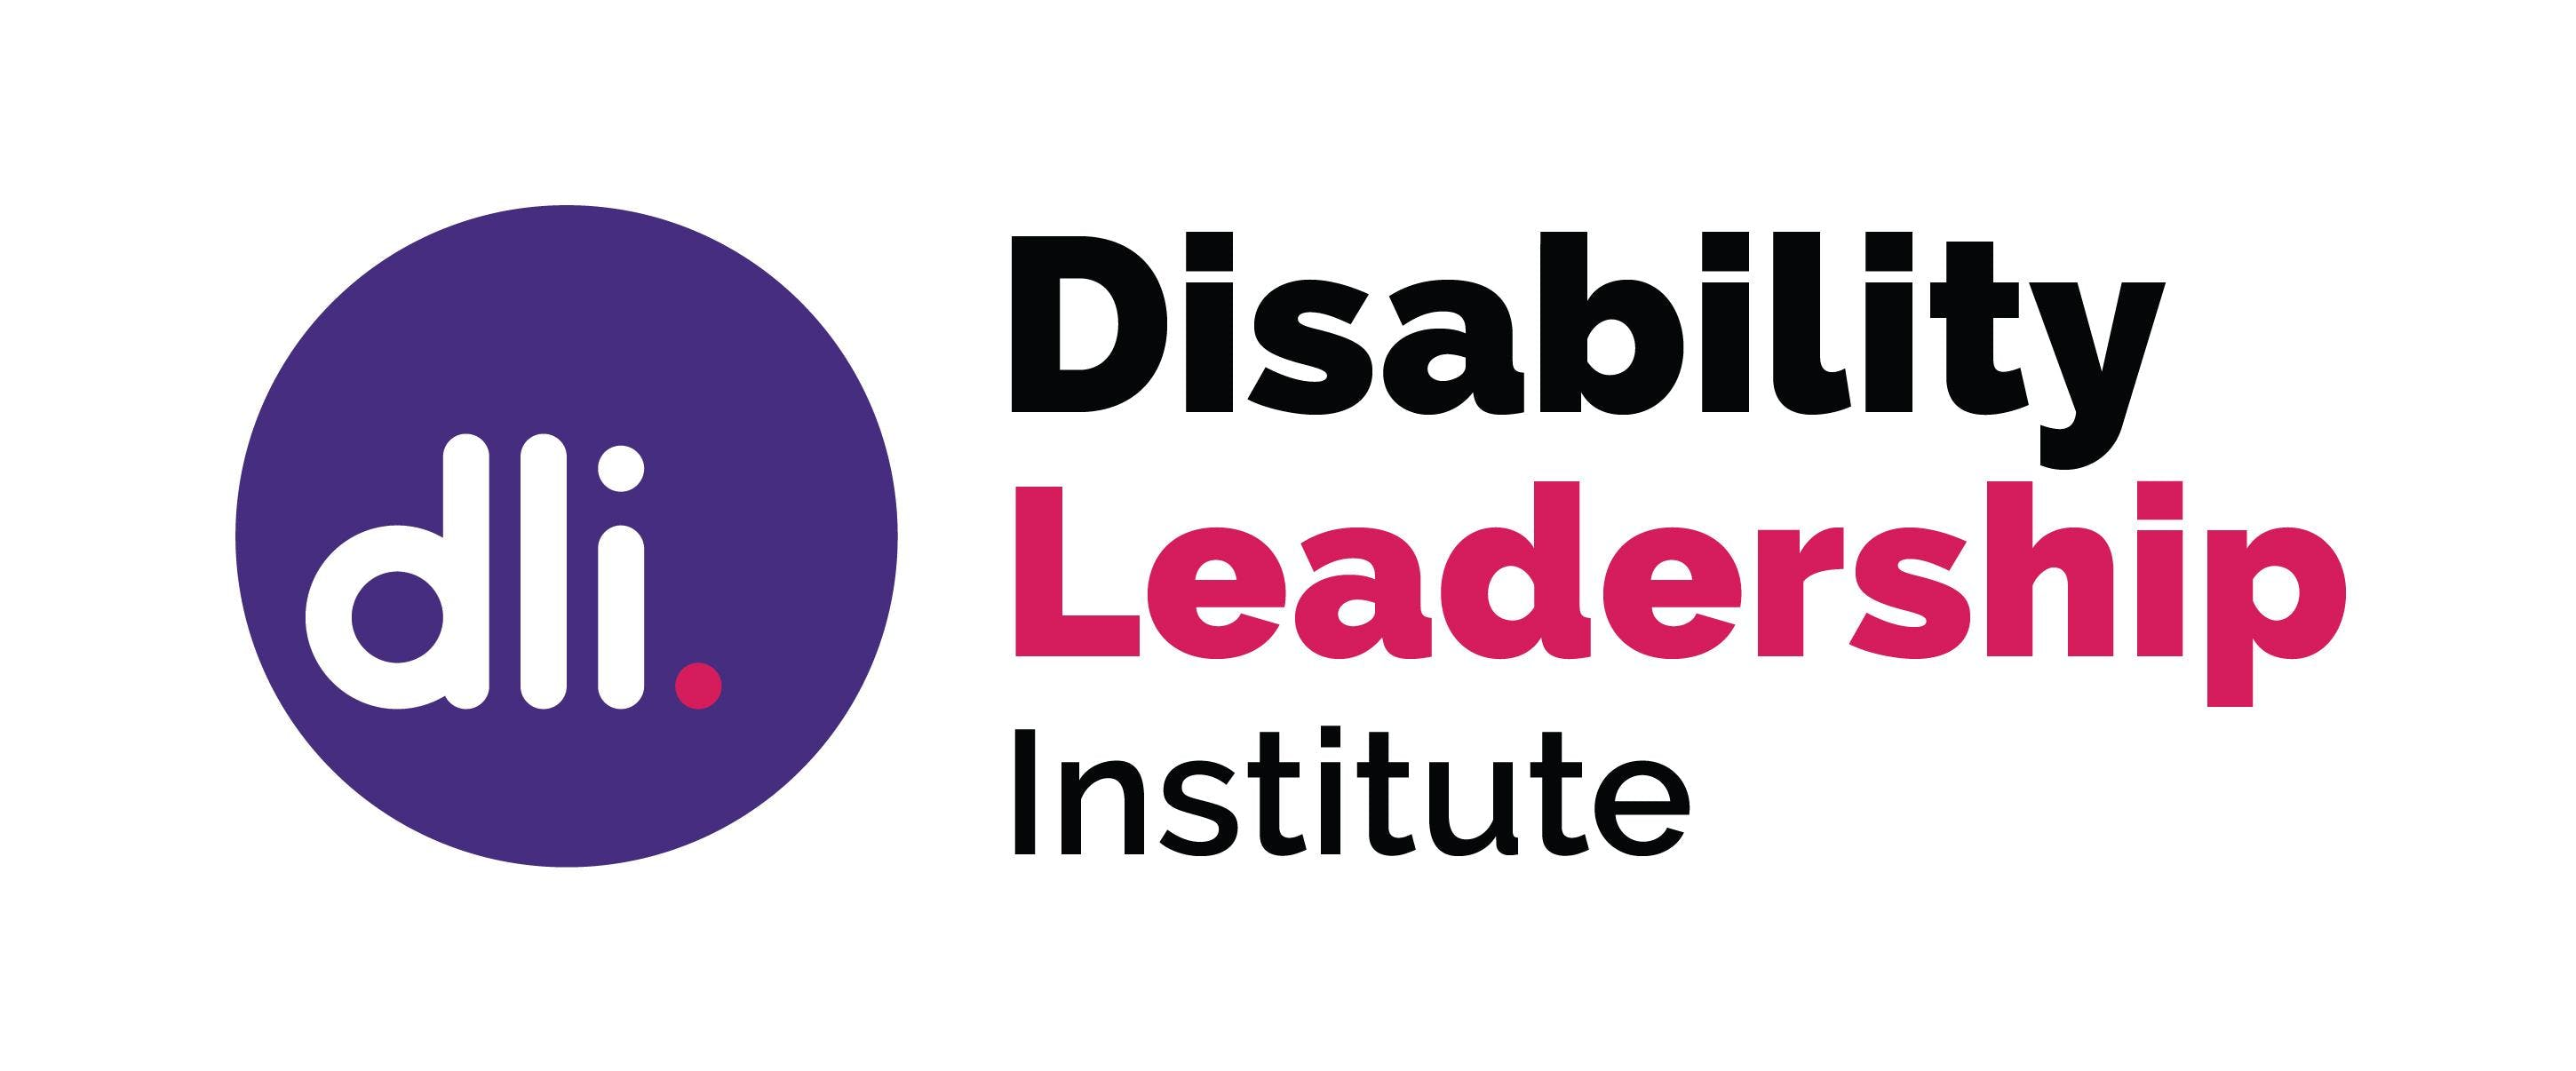 Recruiting people with disability to boards Masterclass